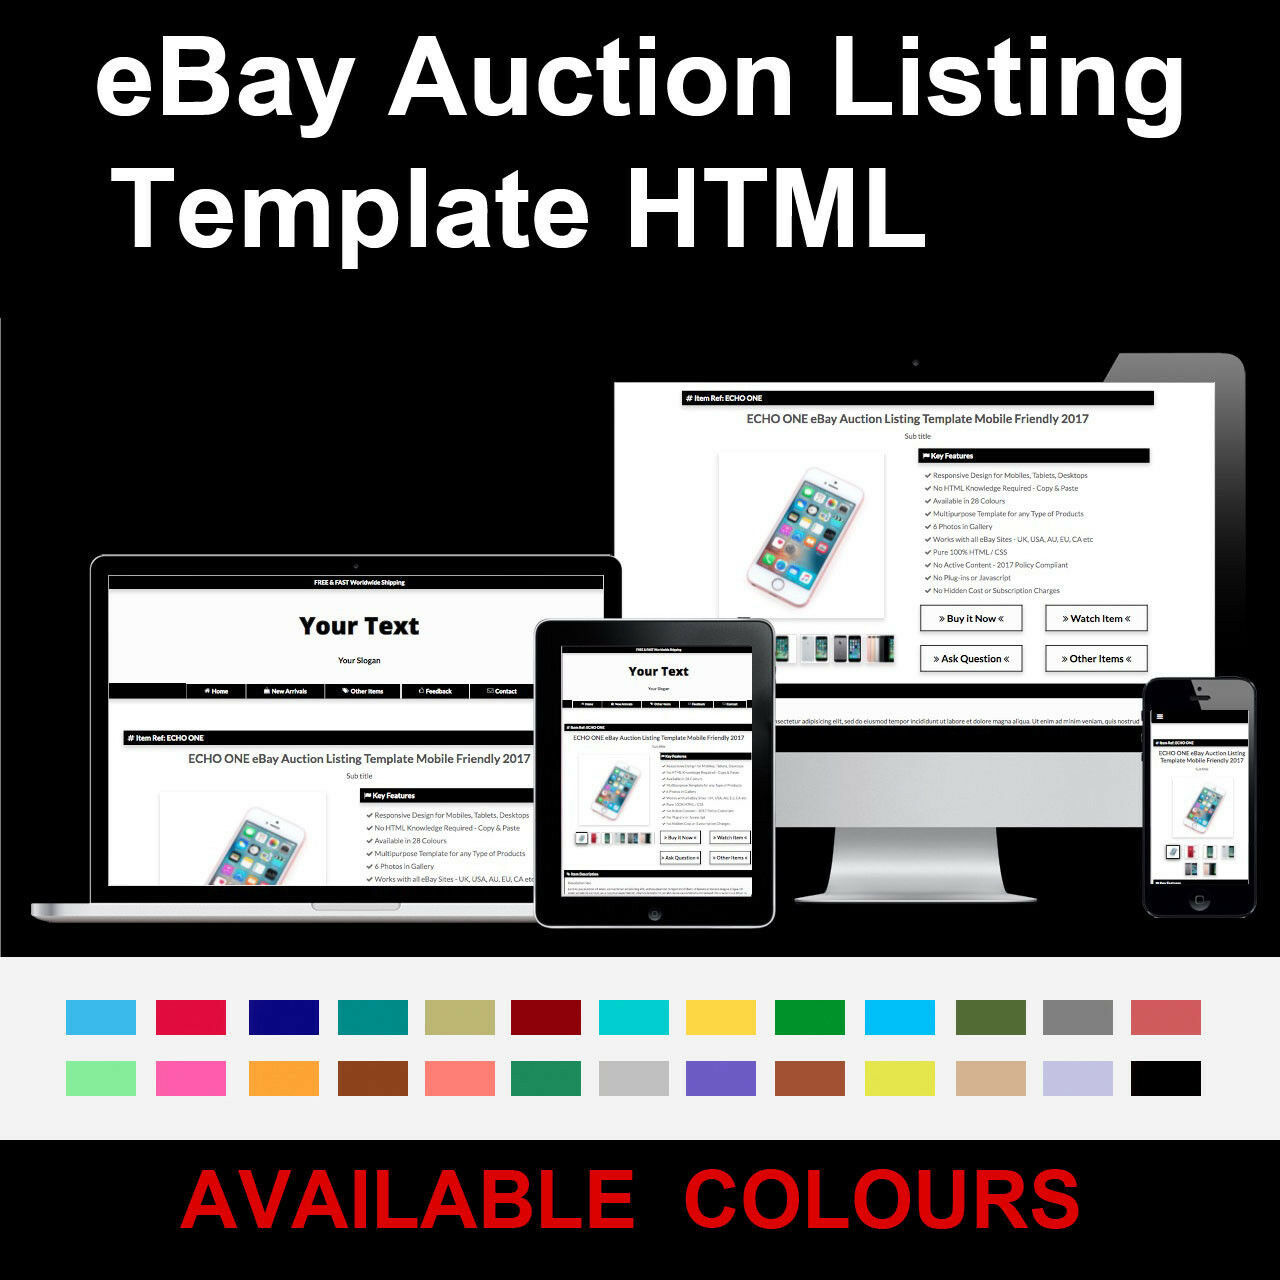 Ebay Template Listing Professional Auction Html Code 2017 Image Gallery Css For Sale Online Ebay